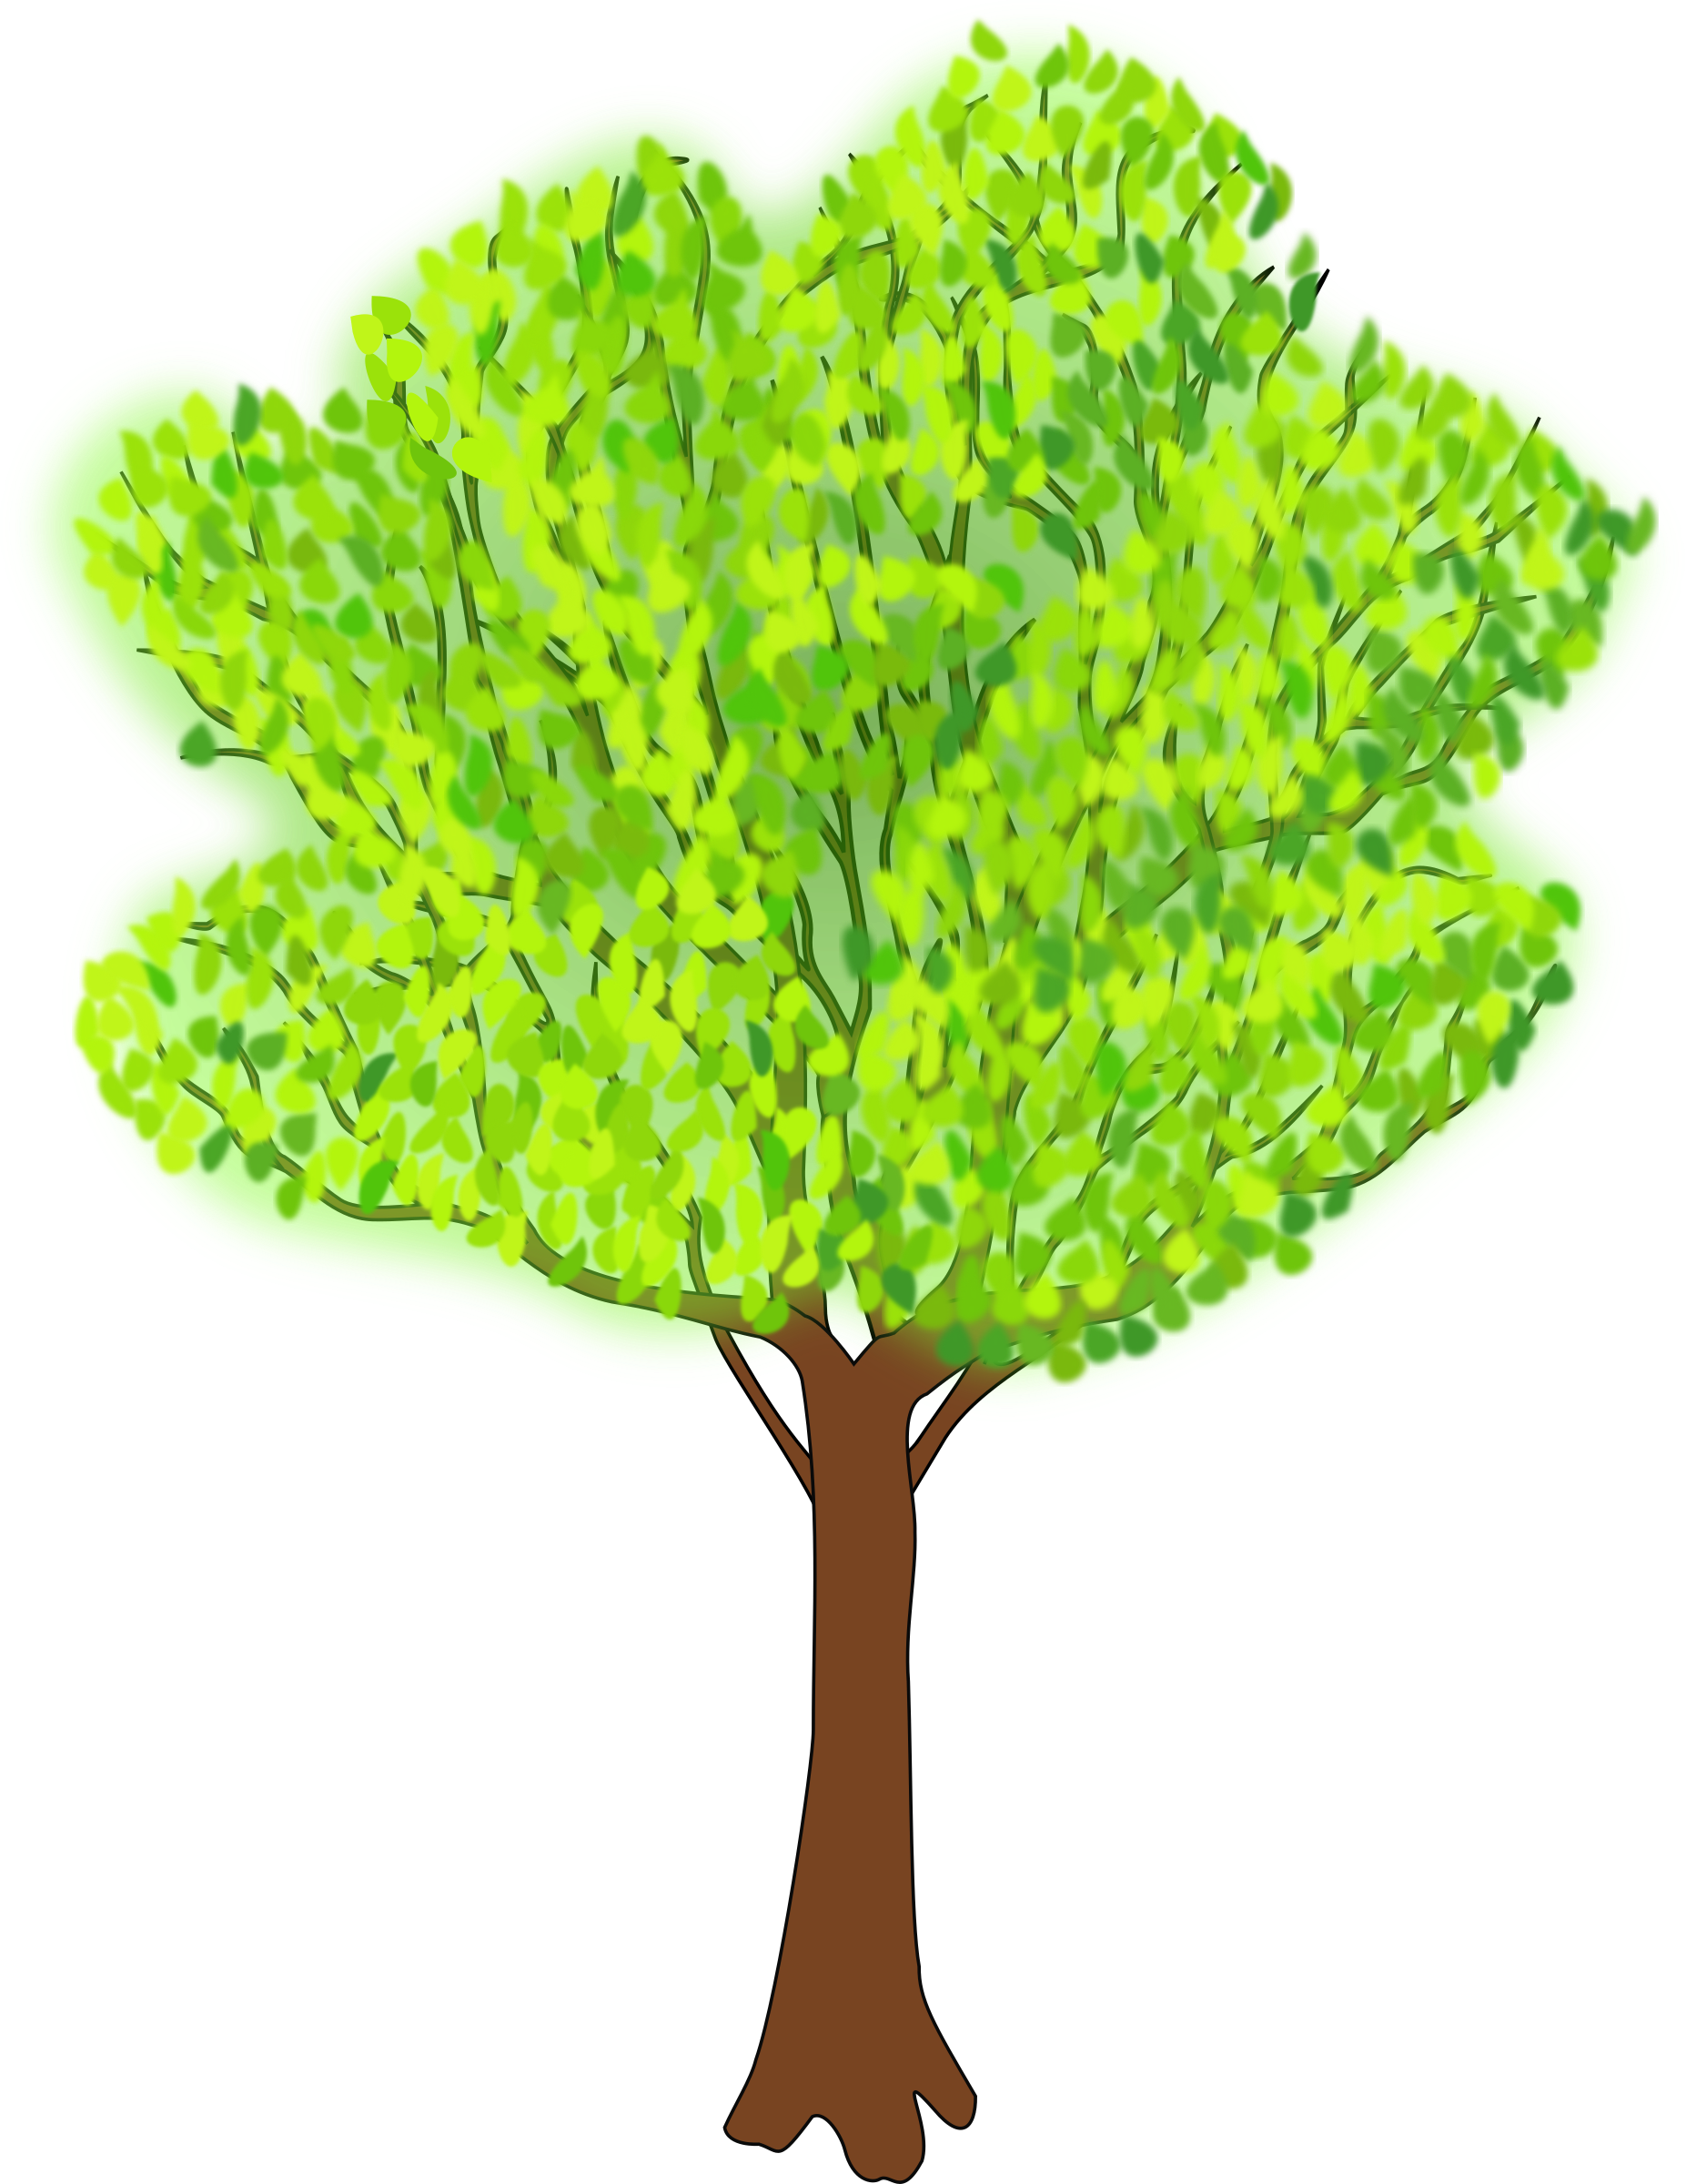 Nut tree clipart png black and white download Clipart - tree in summer png black and white download